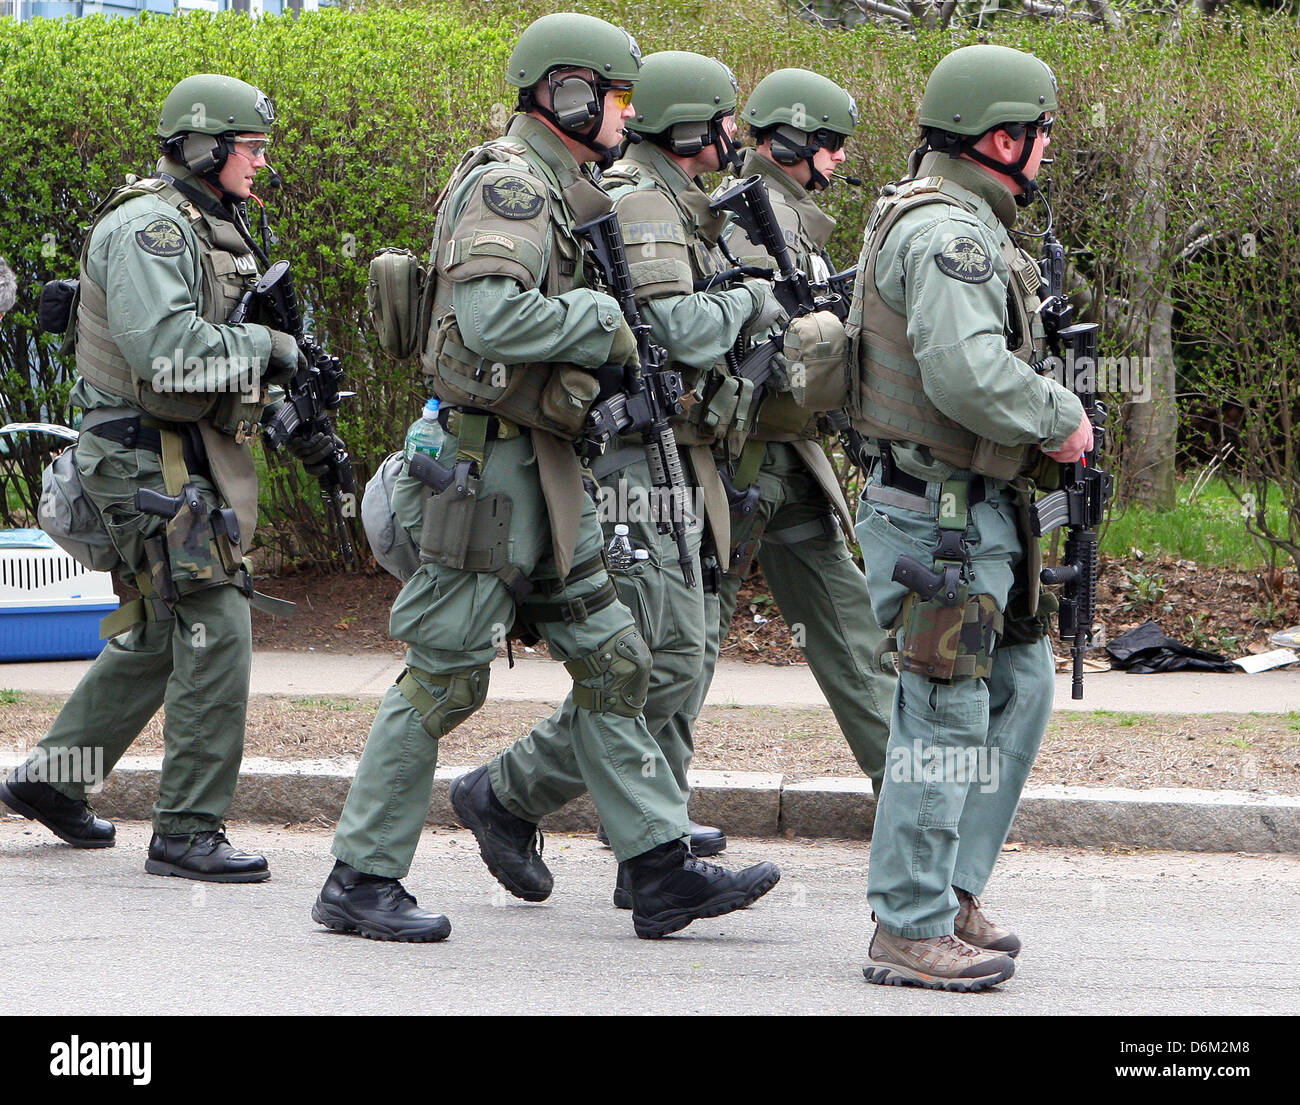 Watertown, Massachusetts, USA. 19th April, 2013. The SWAT team Stock ...